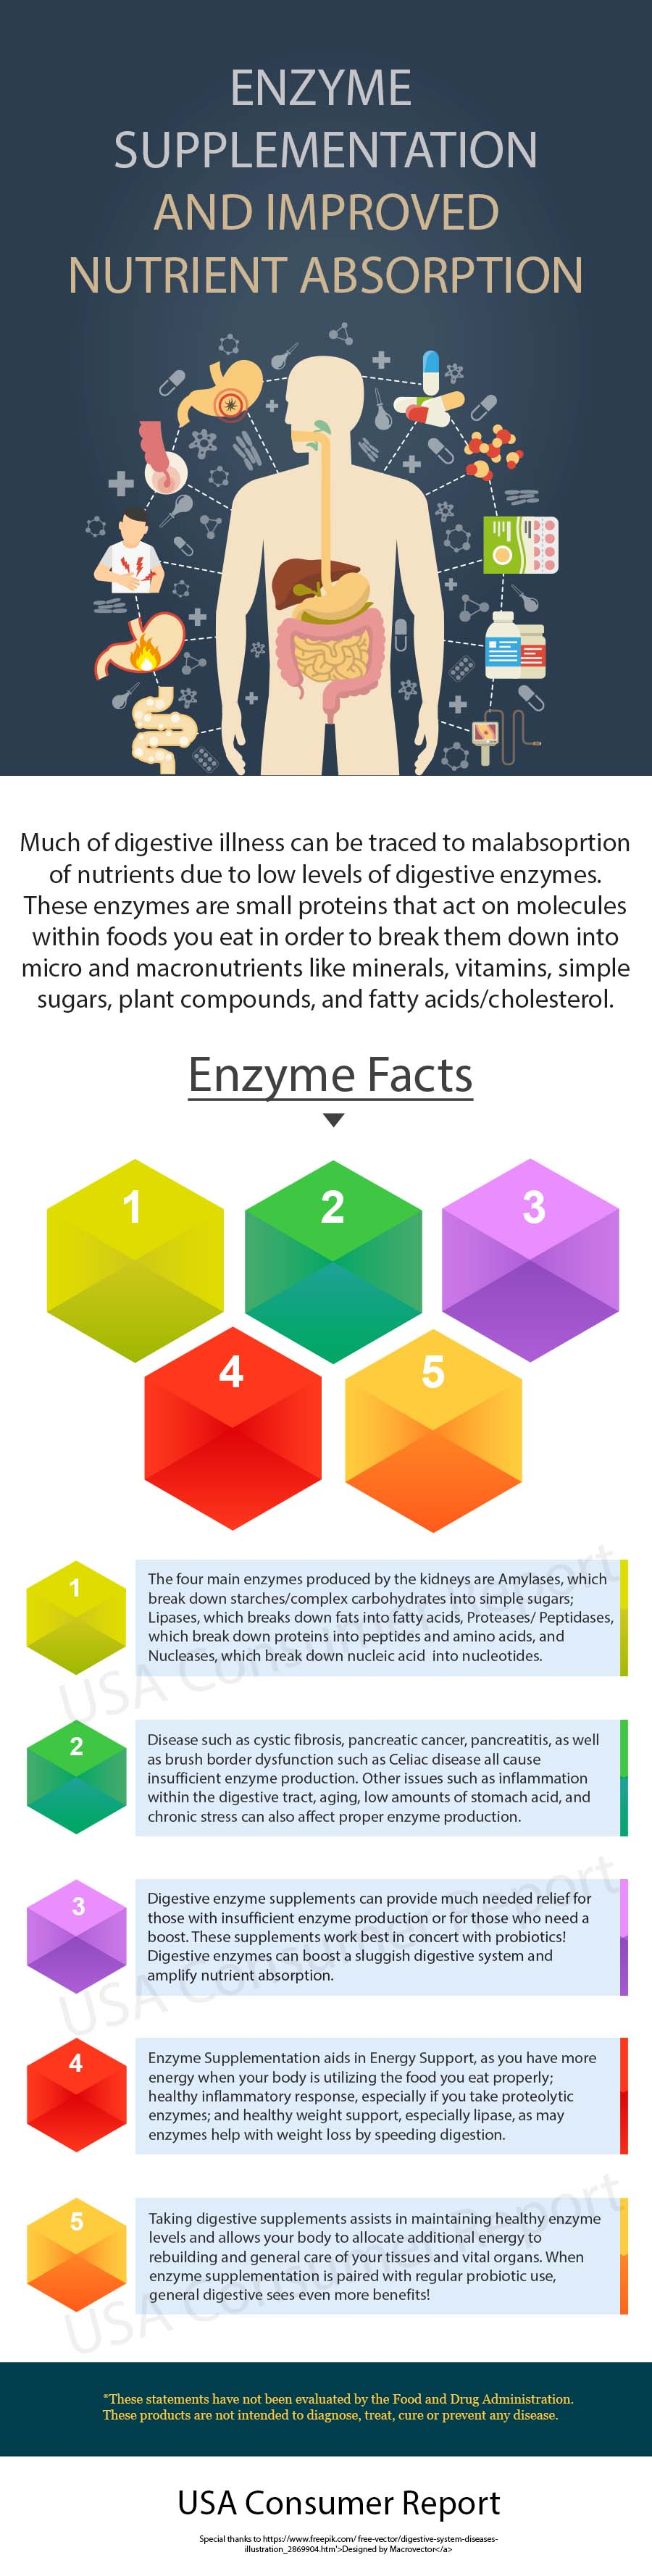 Infographic about the benefits of enzyme supplementation